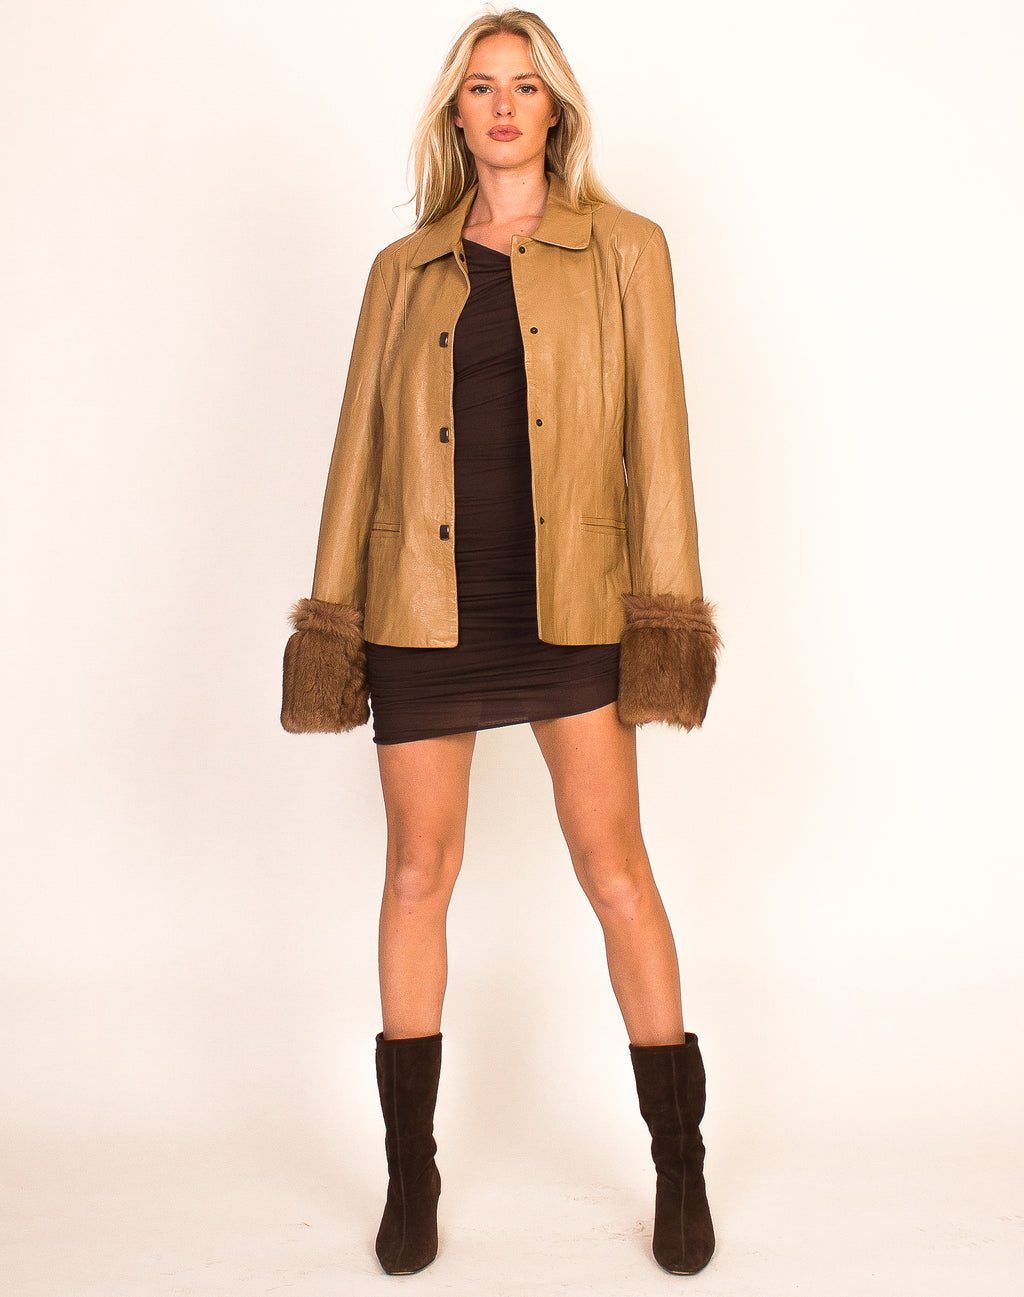 BROWN LEATHER FUR CUFFED JACKET